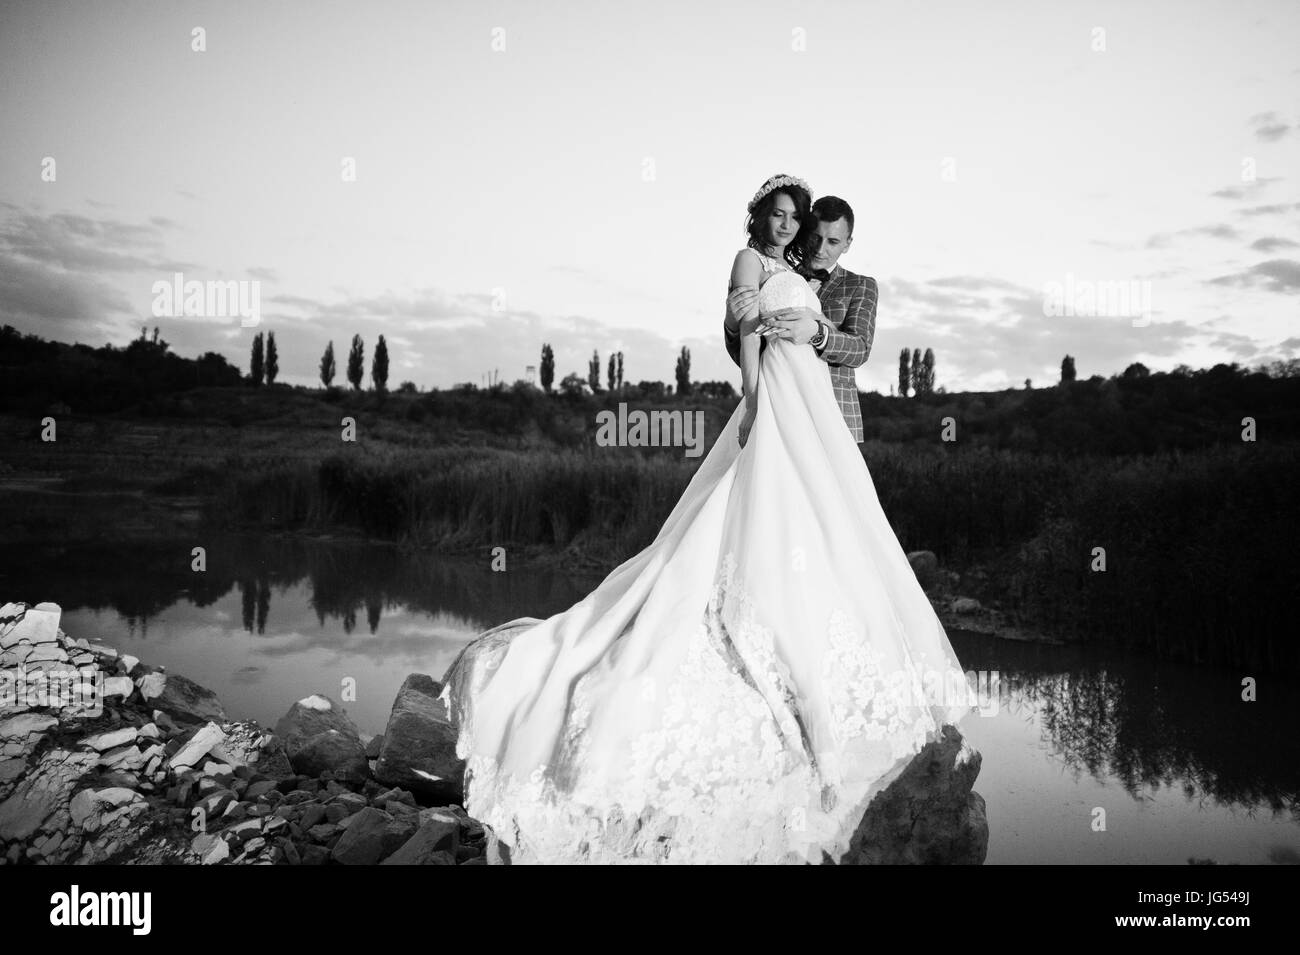 Beautiful wedding couple holding hands and looking at each other in the countryside next to the lake in the evening. - Stock Image